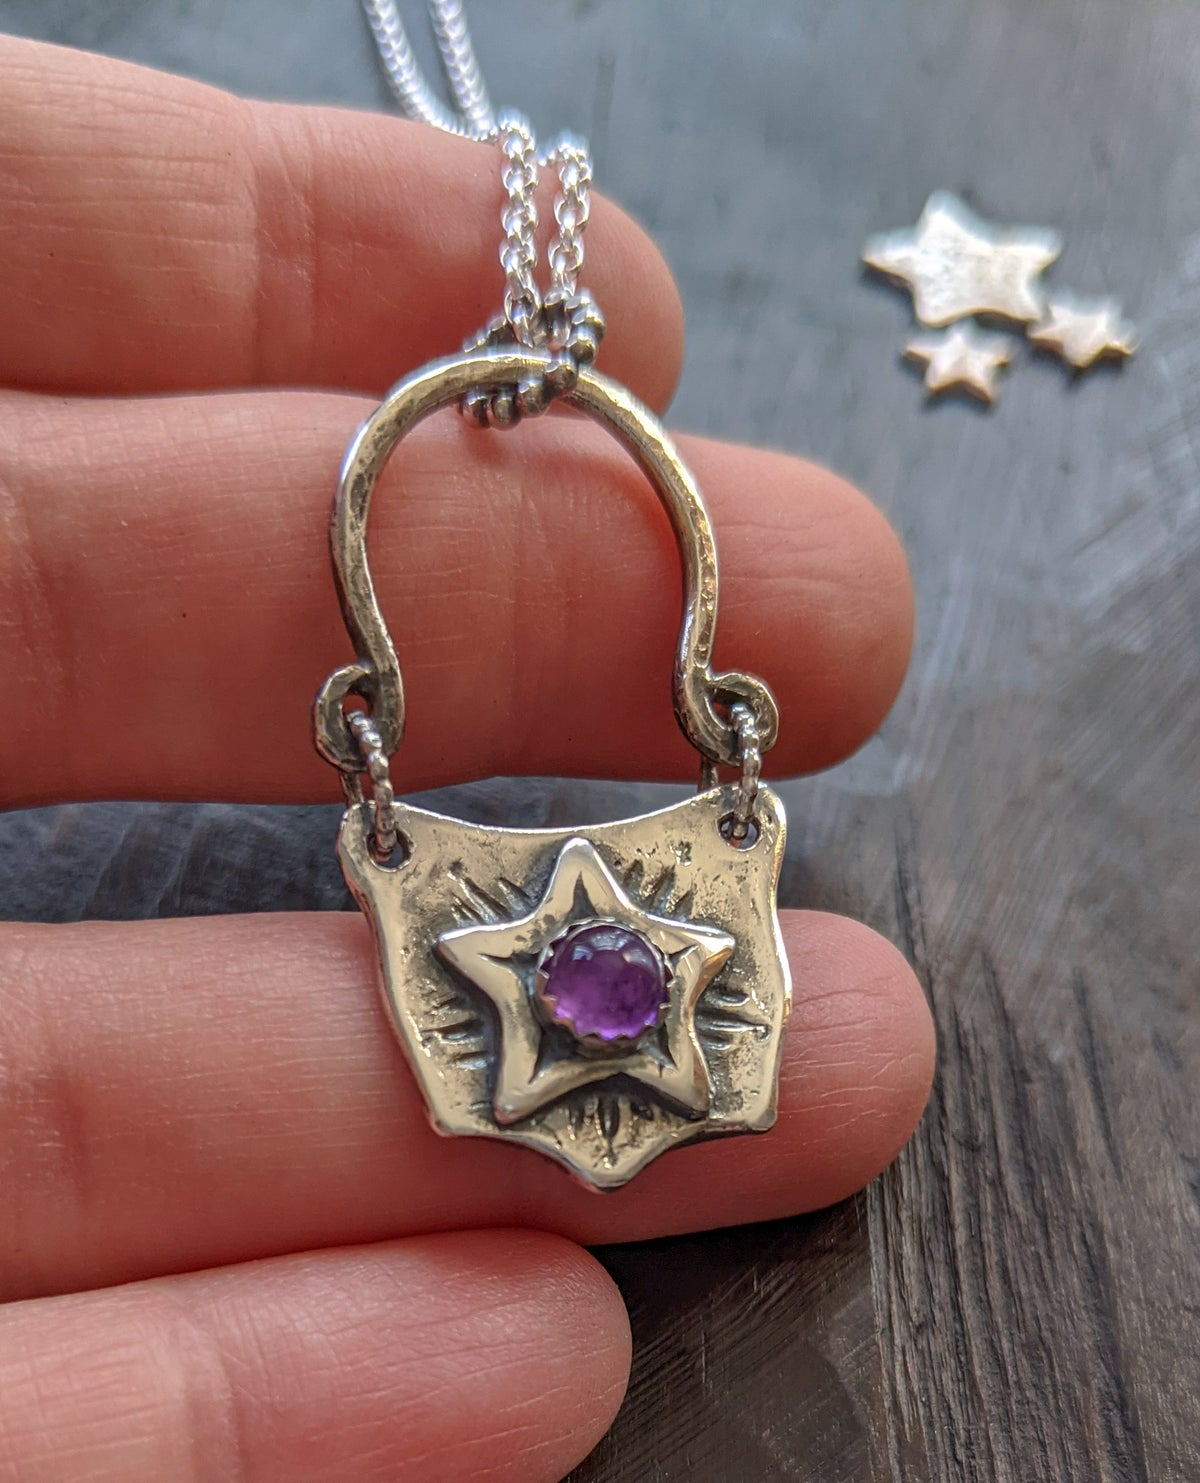 Magic Cauldron textured recycled silver & amethyst pendant